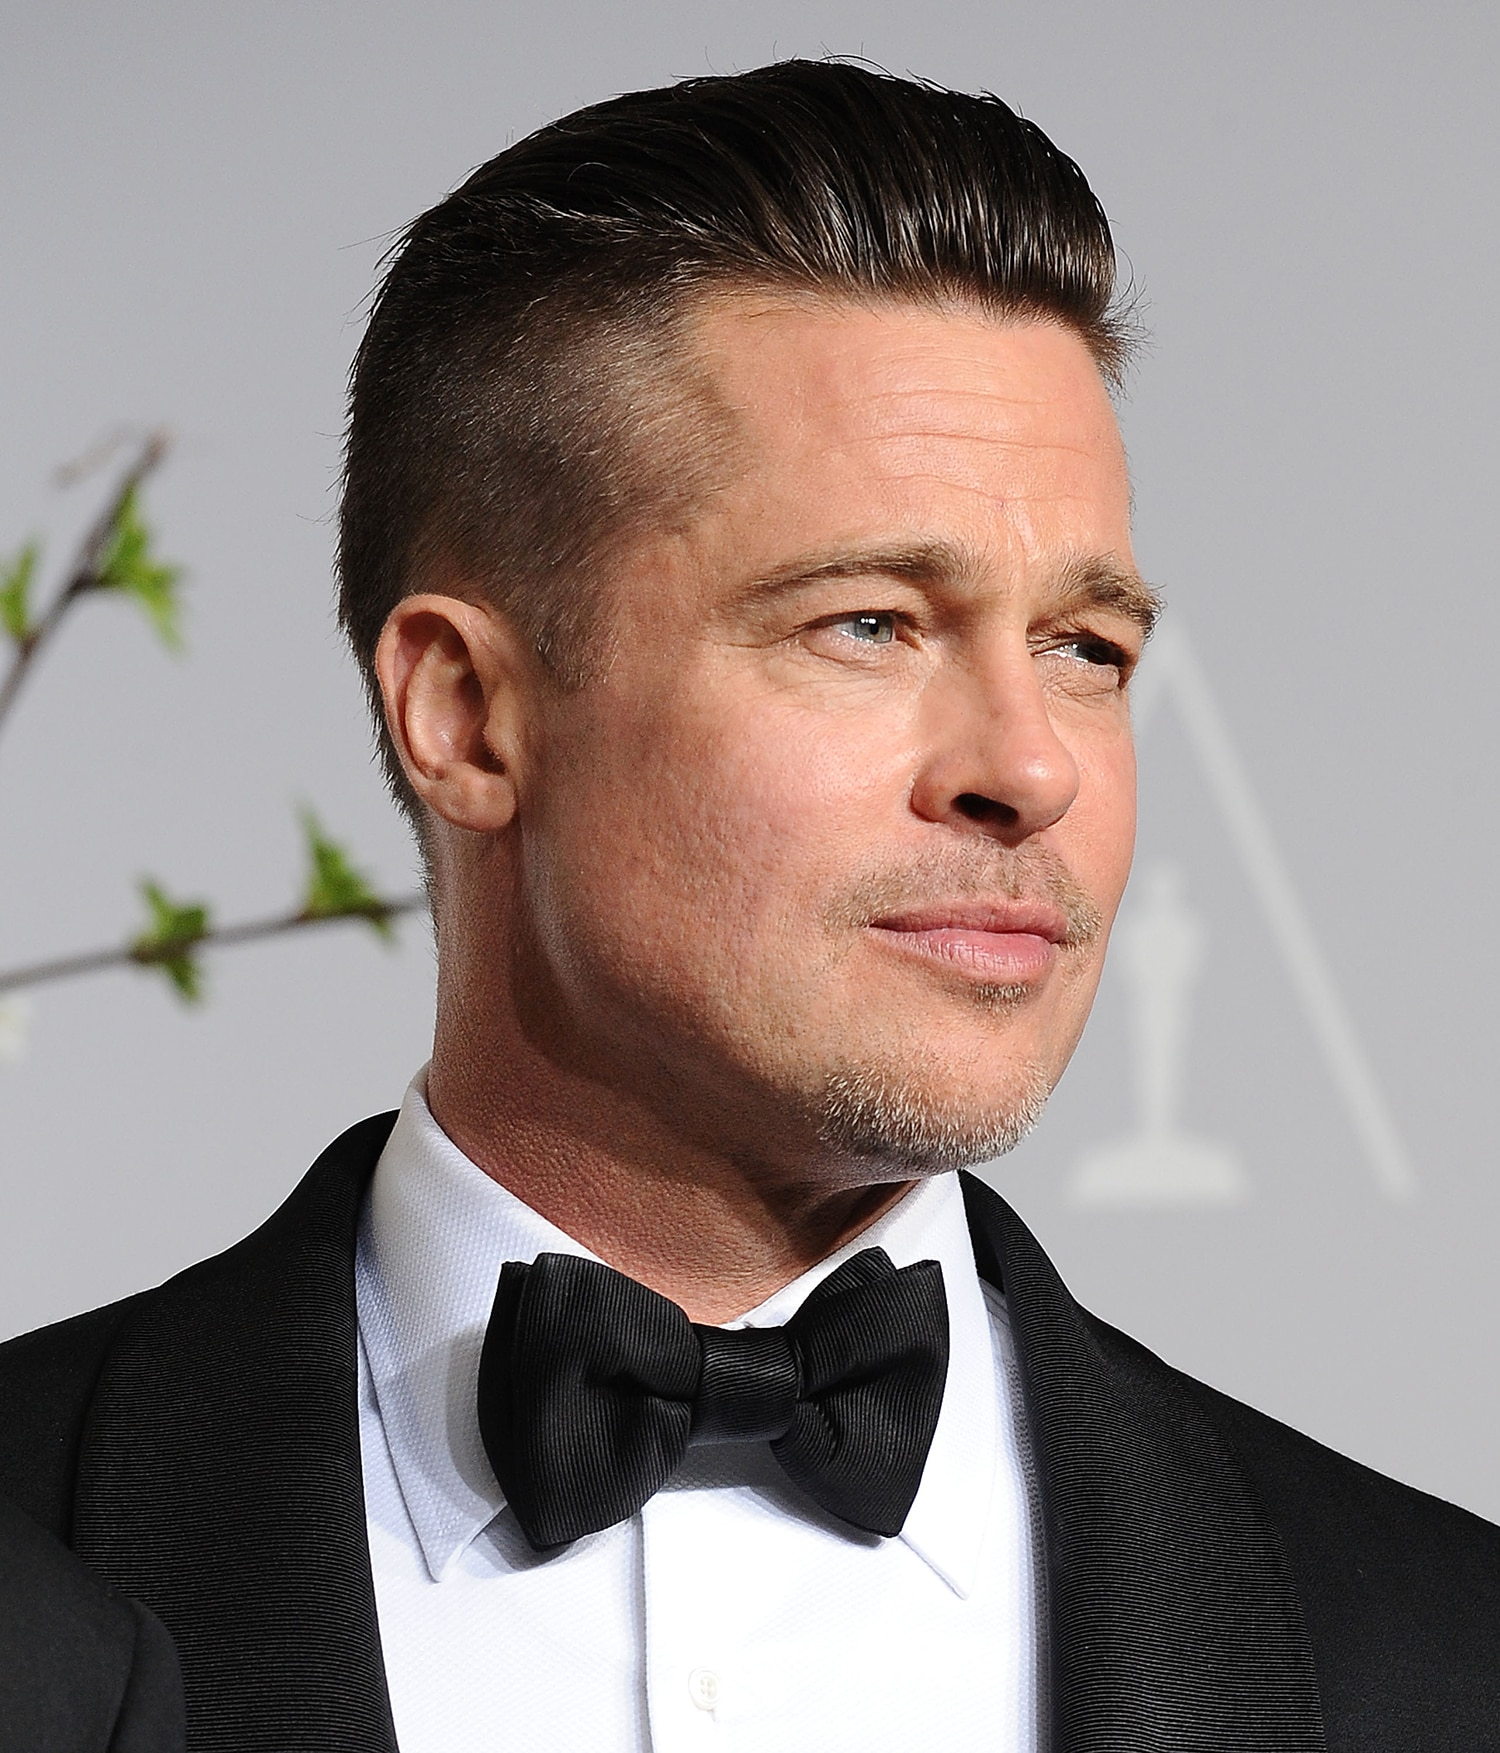 Brad Pitt - Brad's gone through a lot of haircuts over the years, but his buzzed sides and gelled-but-not-crunchy style is the best yet.Photo by:Jason LaVeris/WireImage